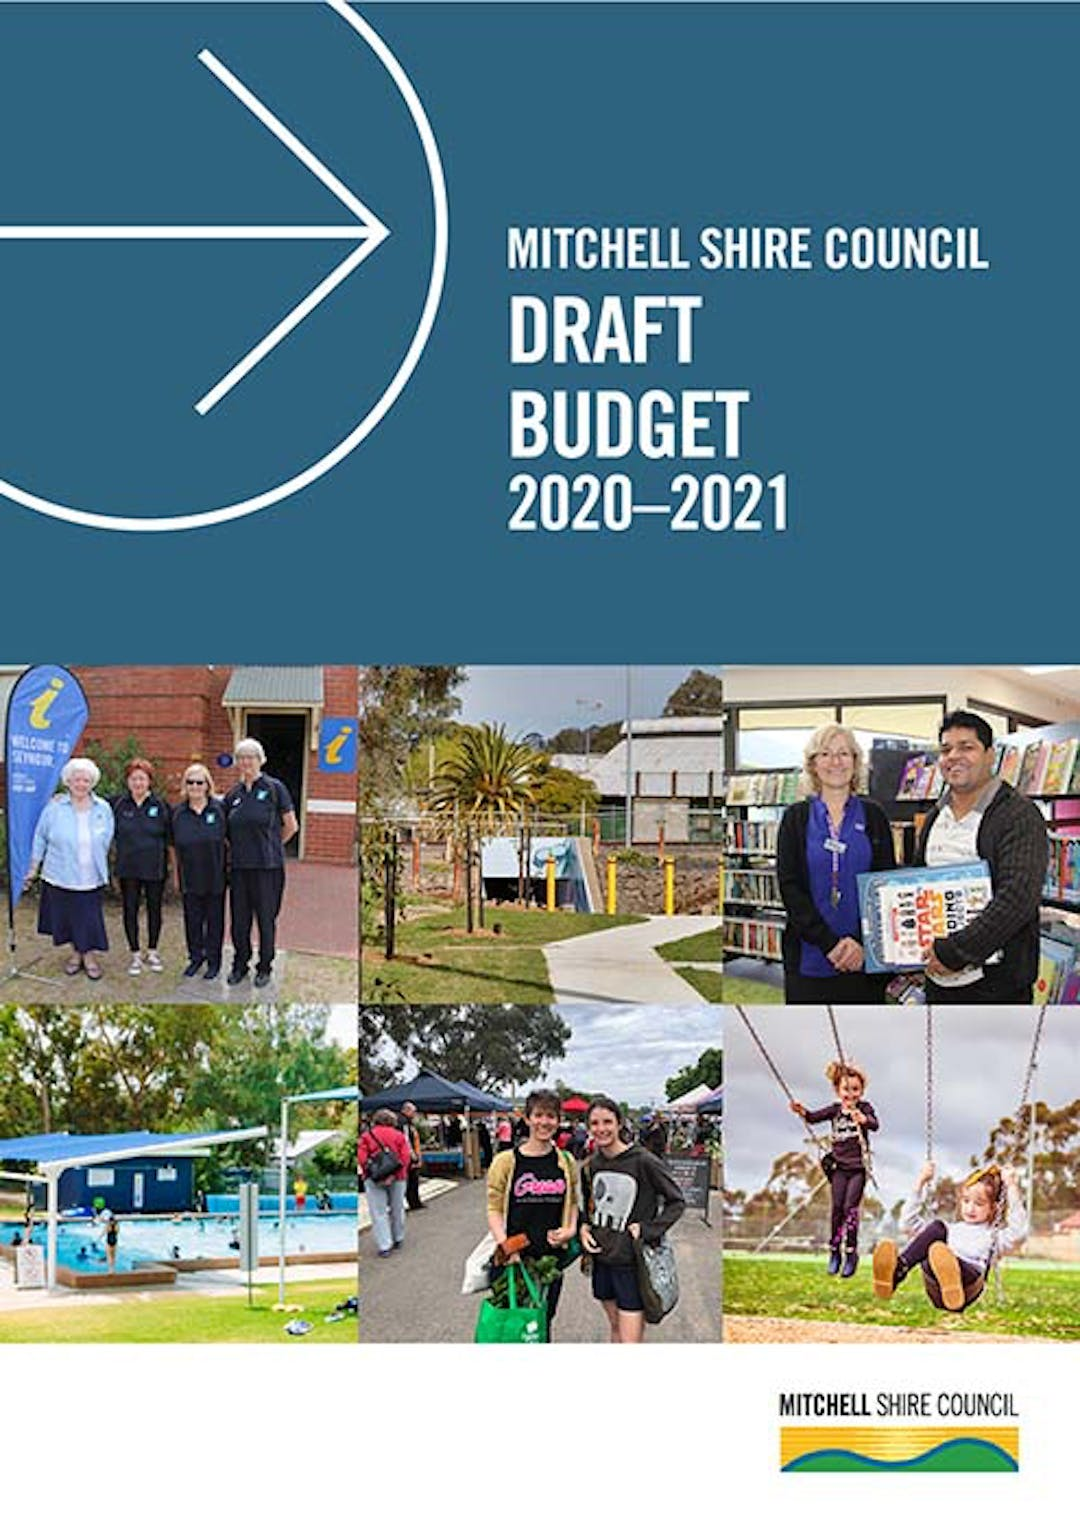 Budget document cover